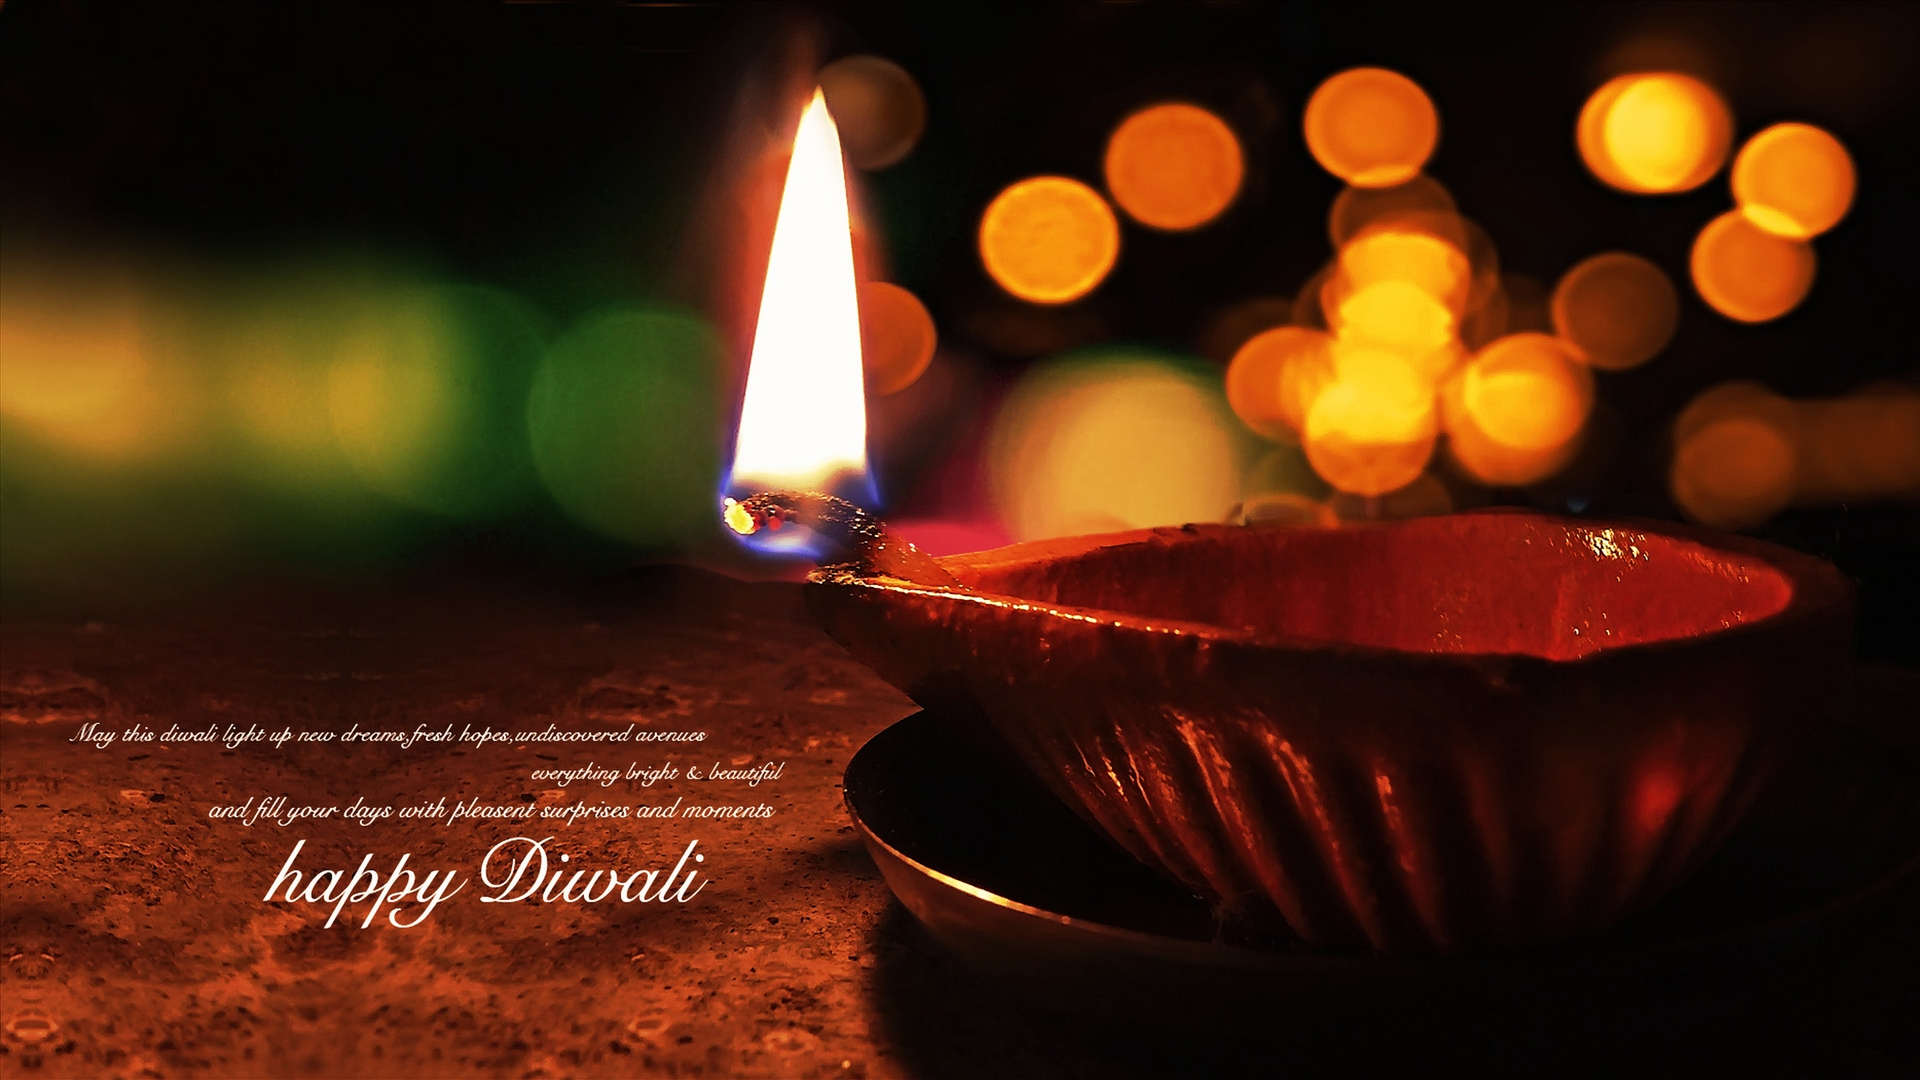 High Definition Diwali Wallpapers A Unique Wish: Download Happy Diwali Desktop Wallpapers Gallery